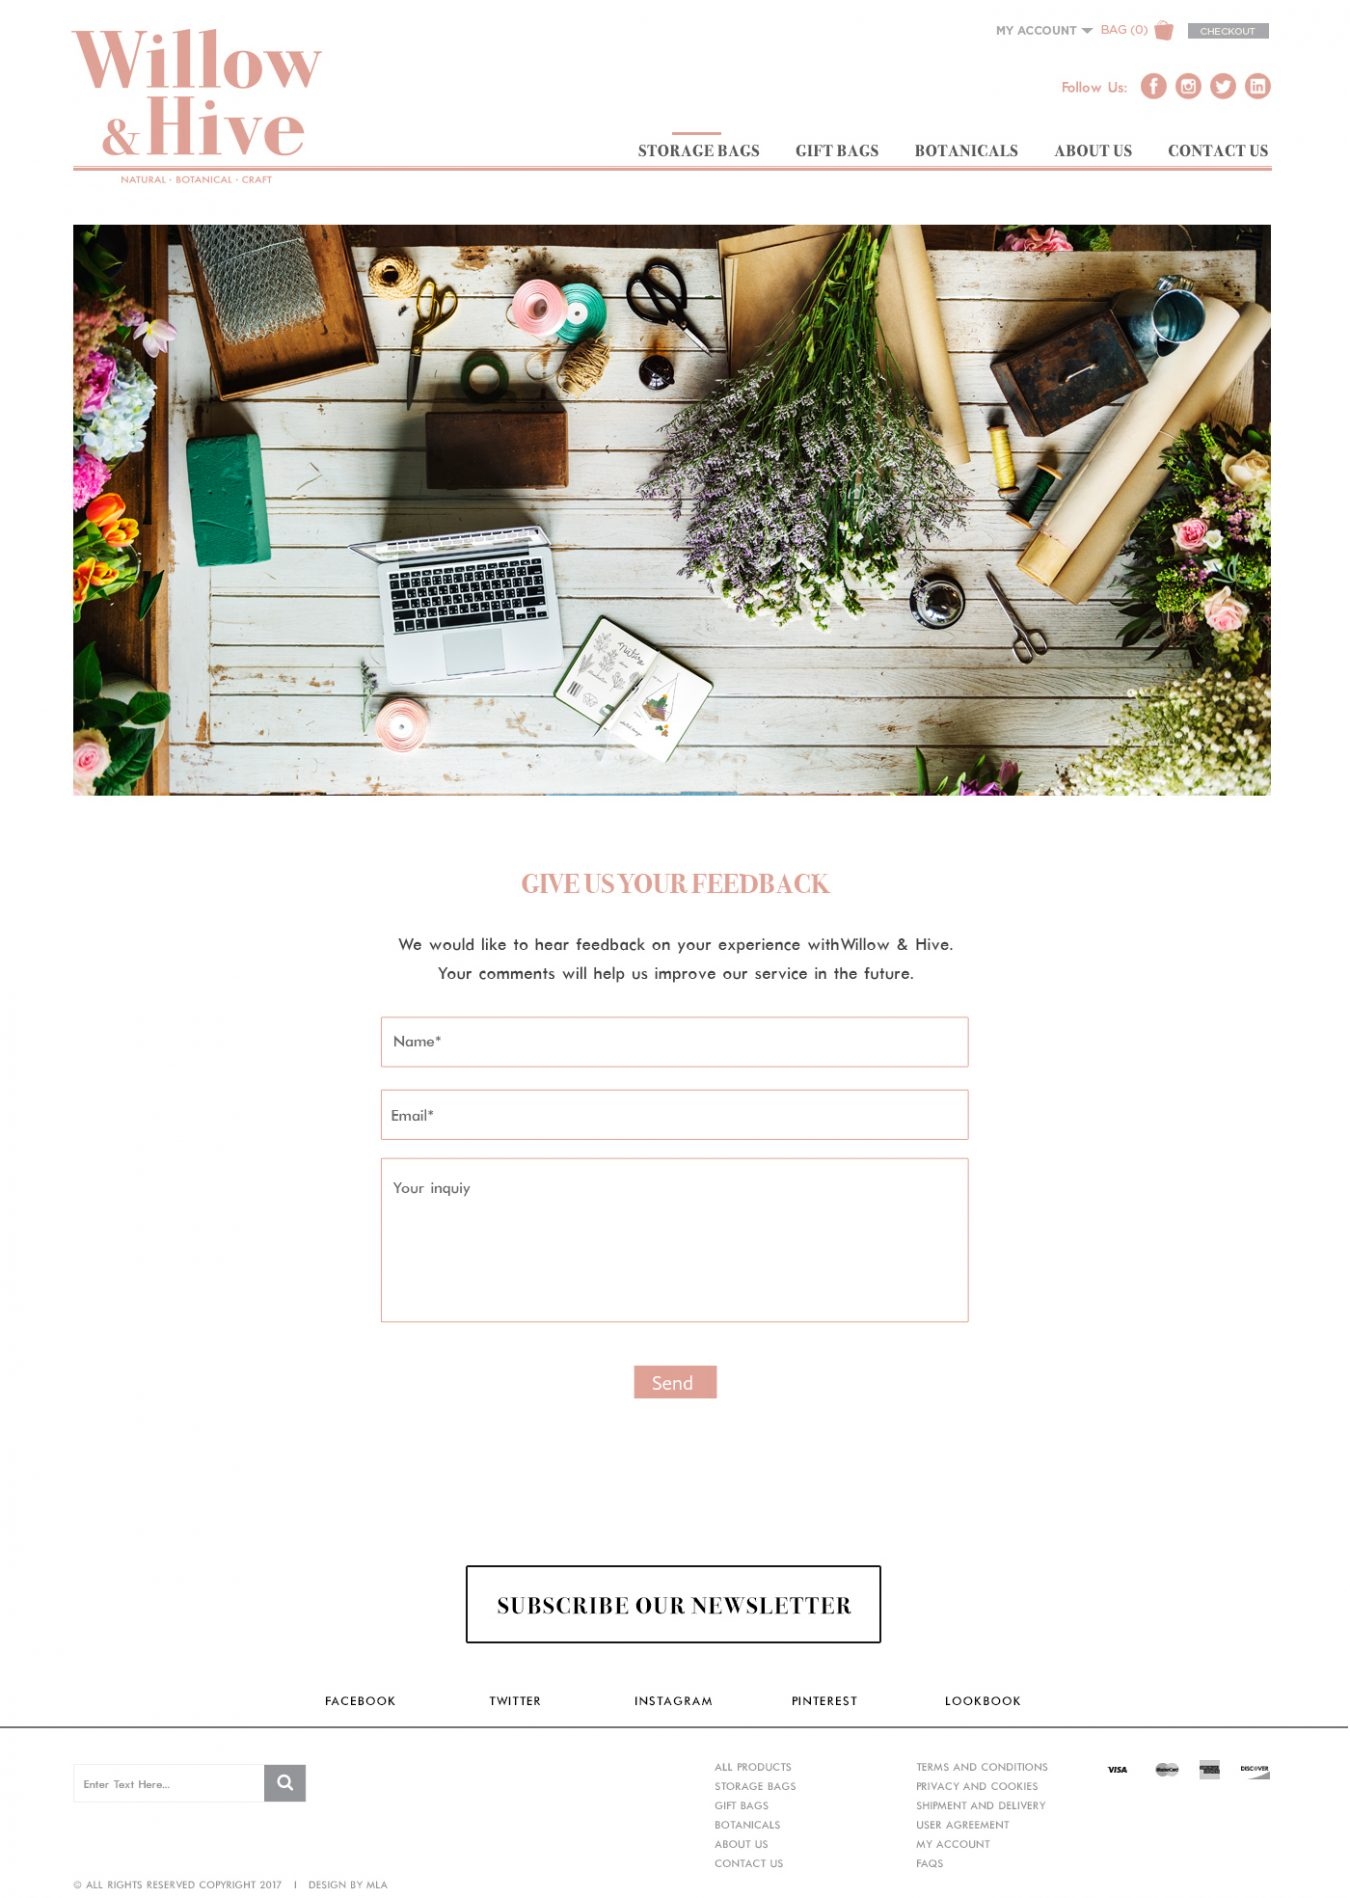 Willow&Hive contact page design - Web design London